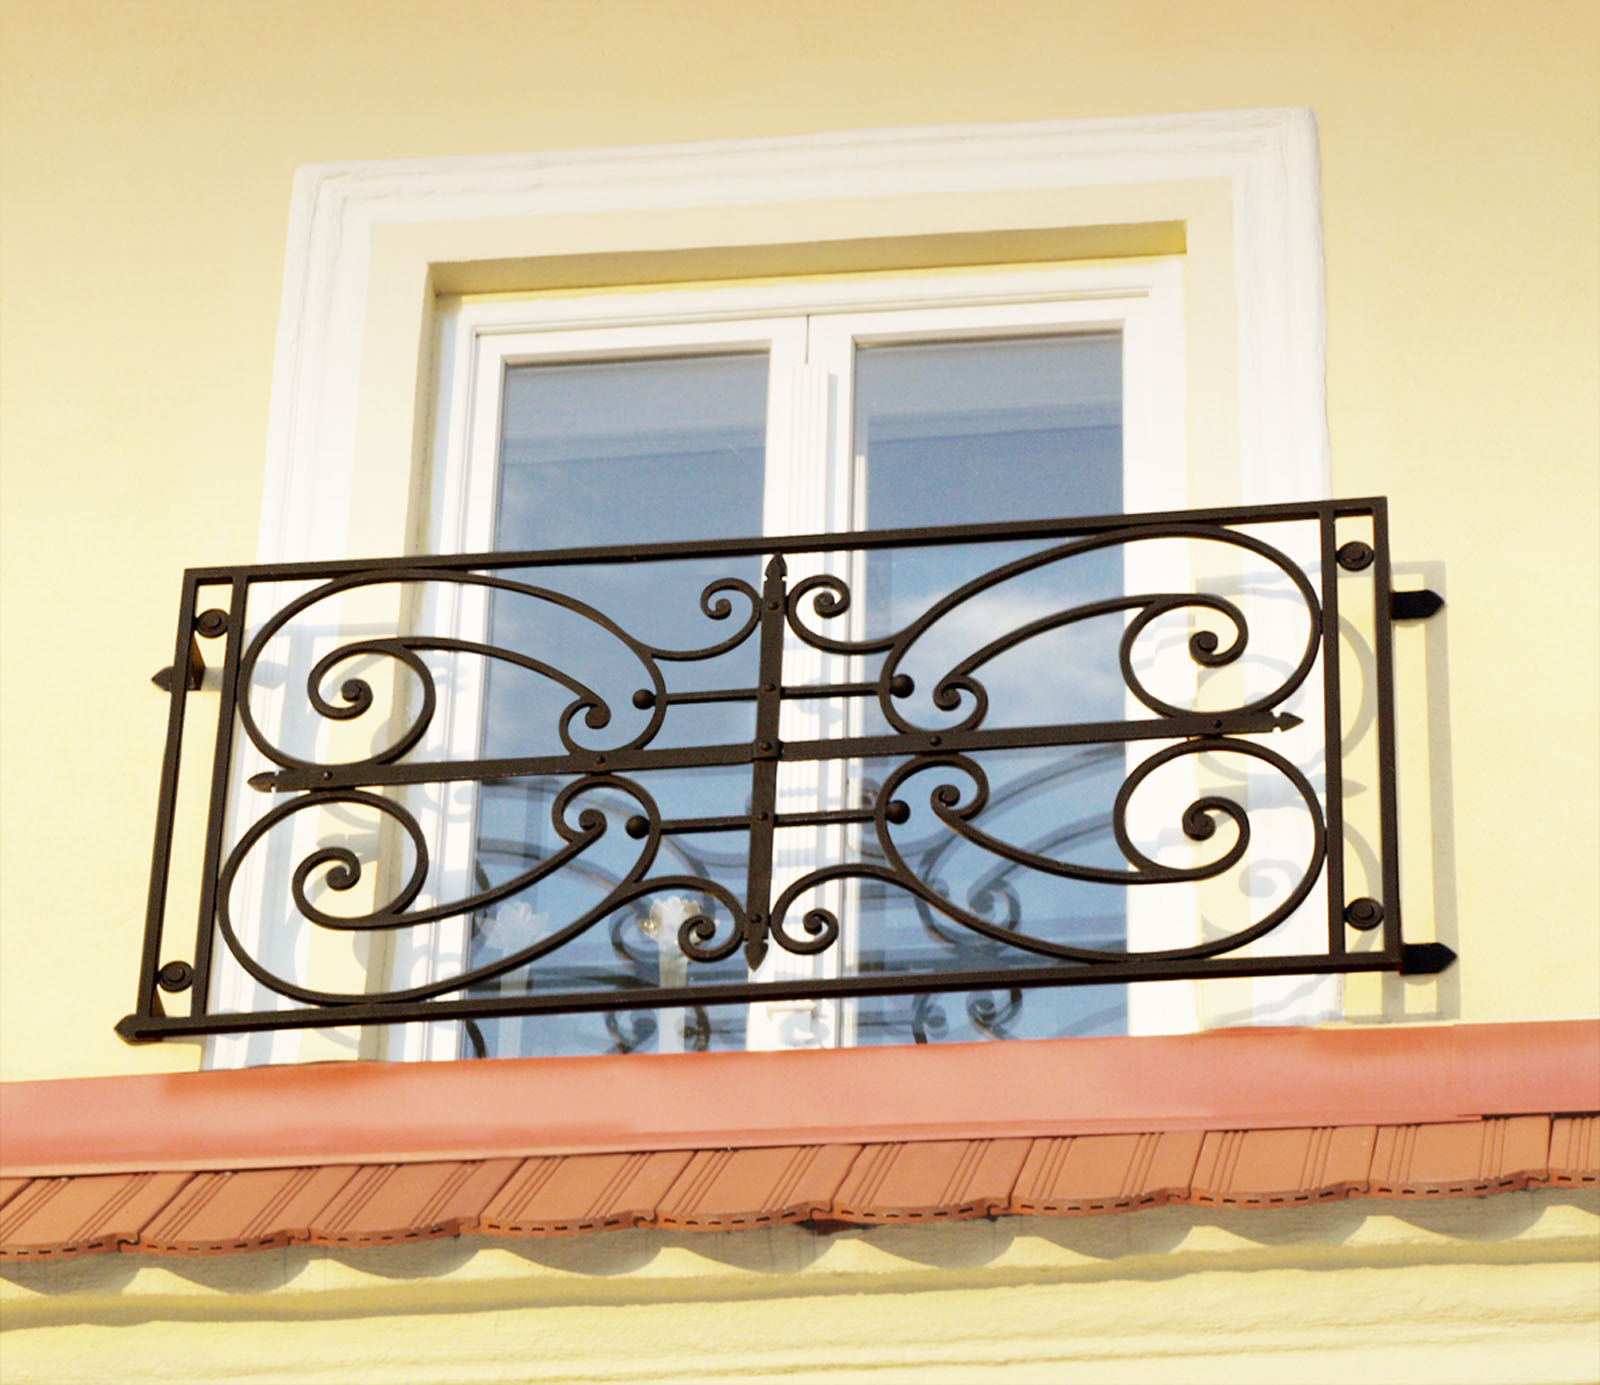 Iron grill of window joy studio design gallery best design for Iron window design house